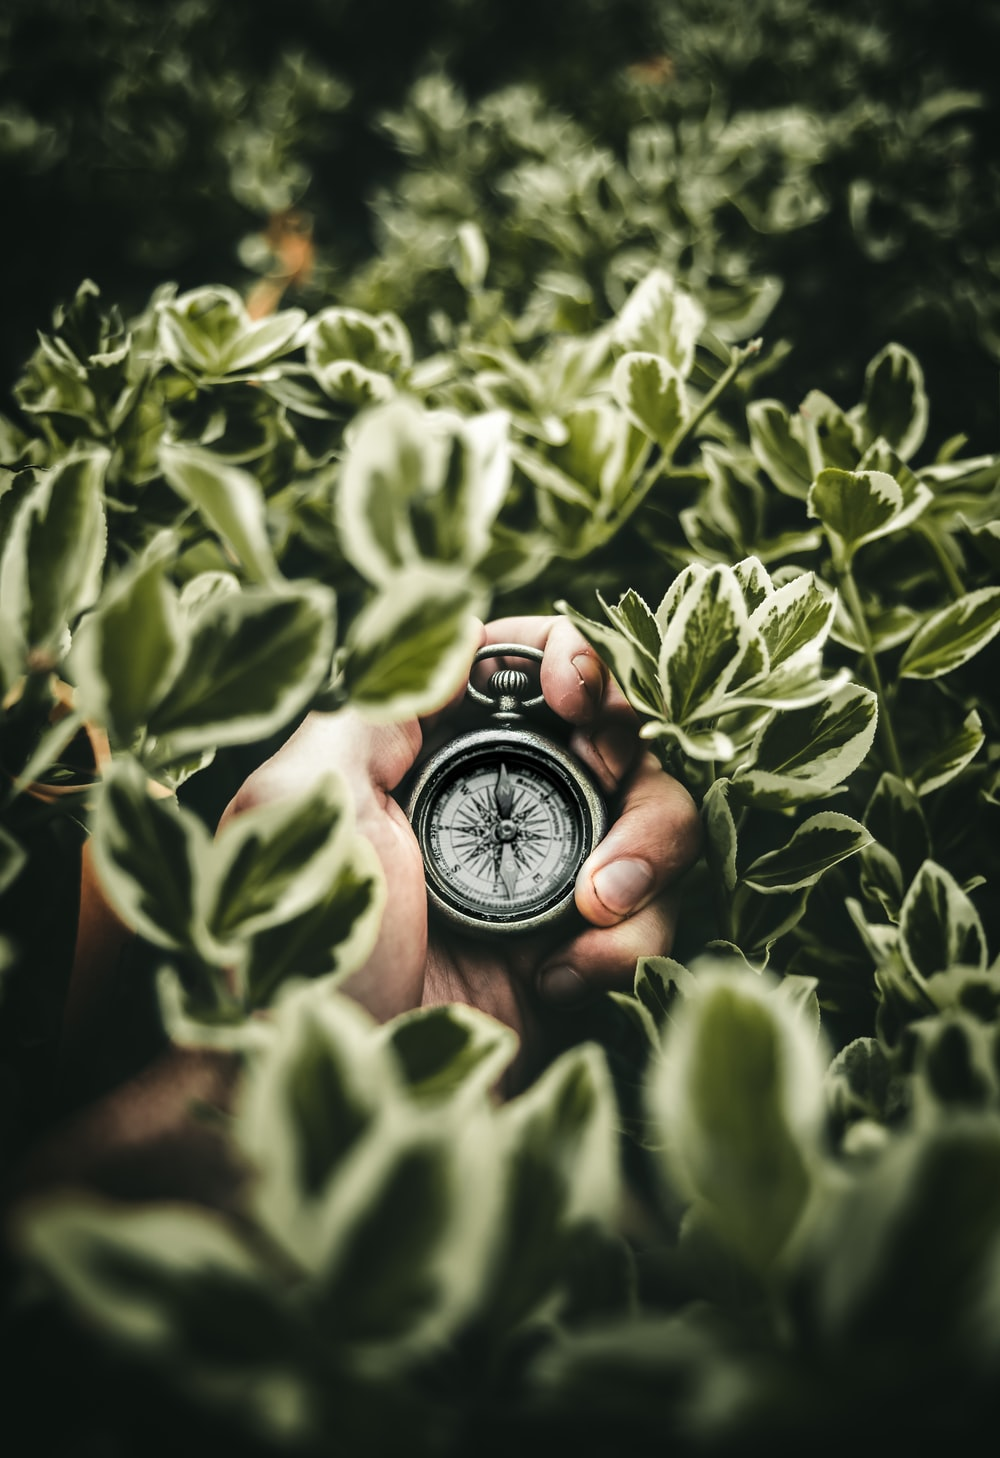 person holding pocketwatch